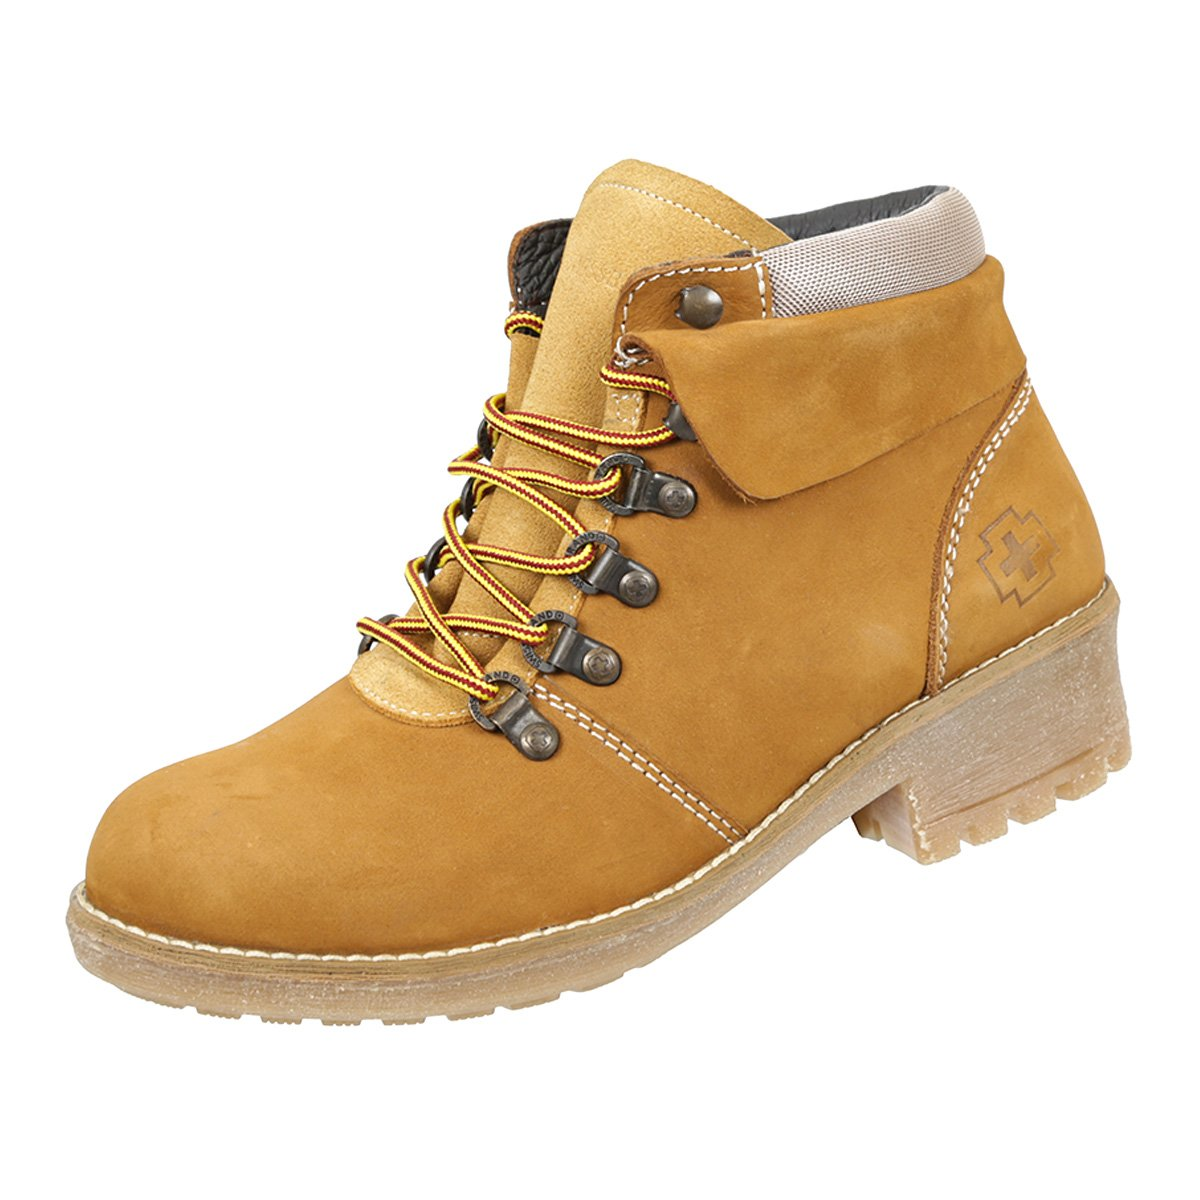 Swissbrand Women's Outdoors Ankle Lace-Up Boot Gold 8